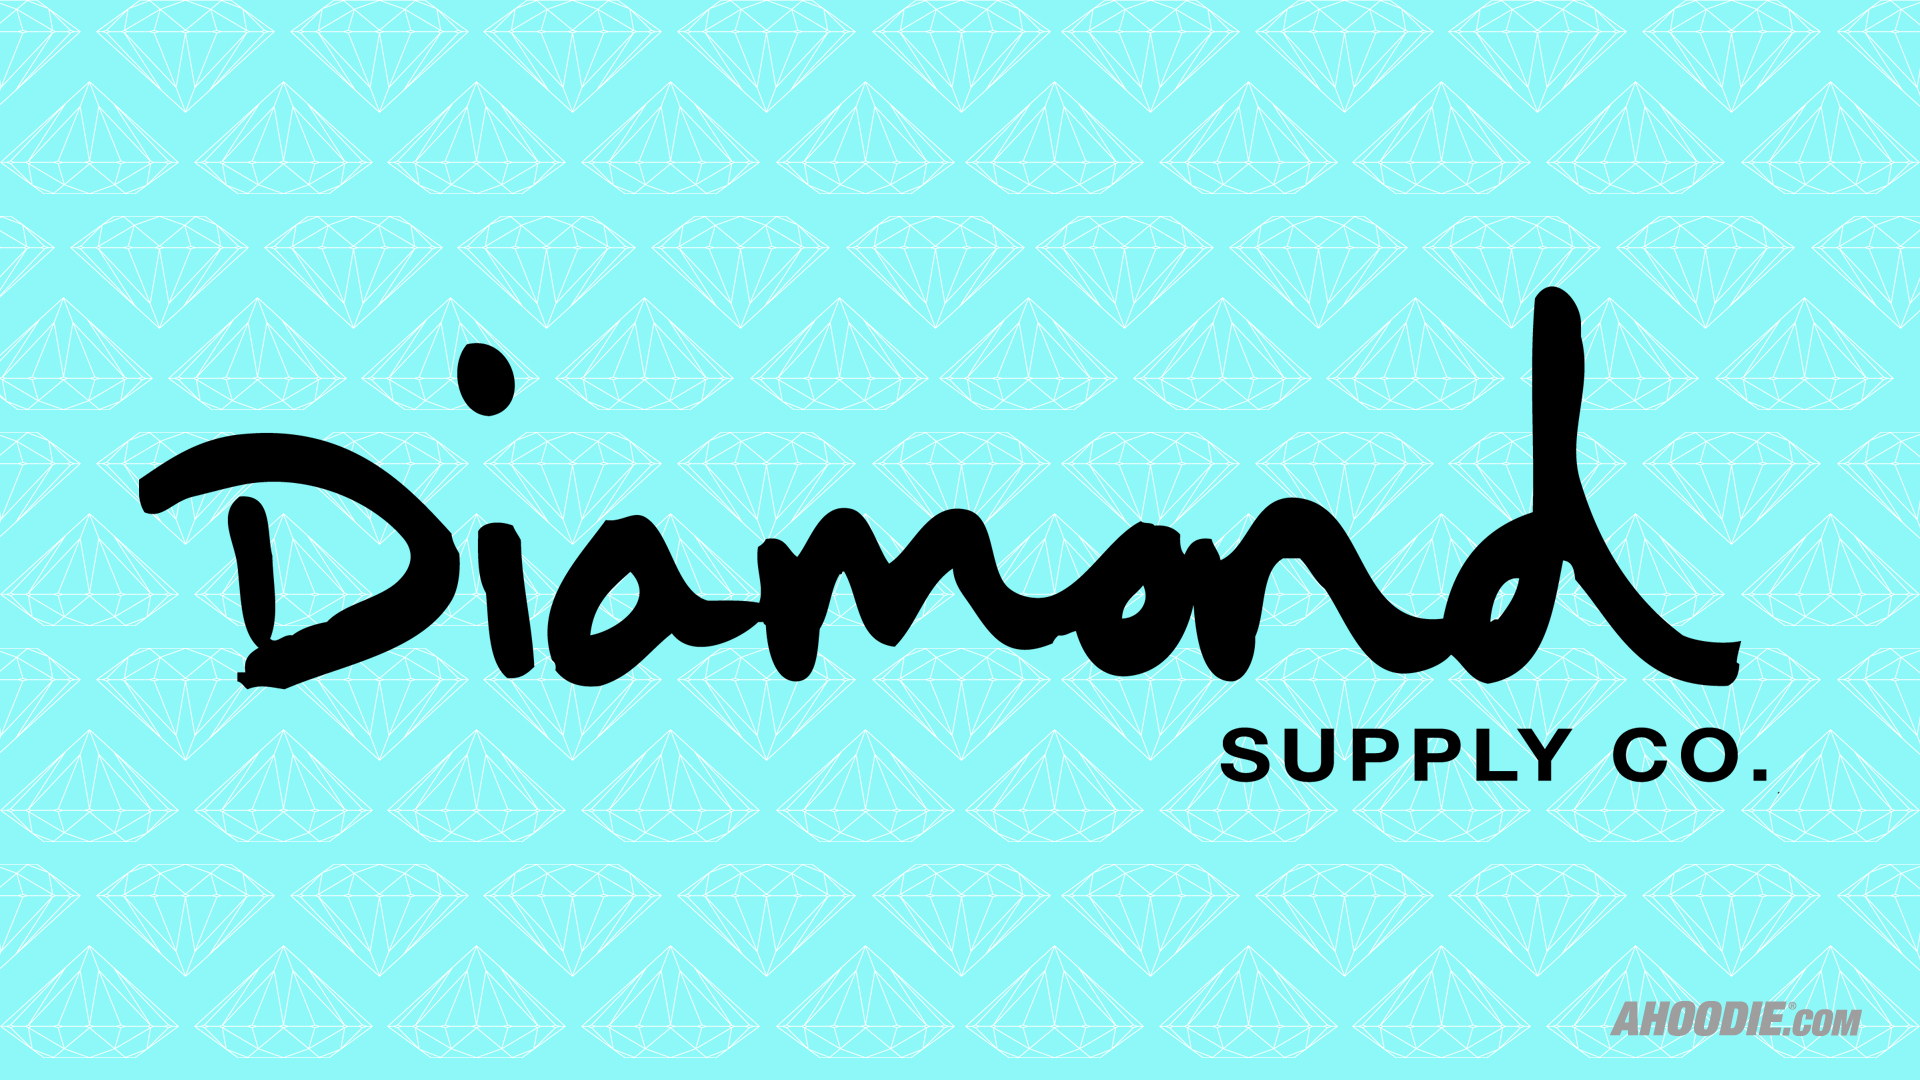 Diamond supply co wallpaper free download diamond supply co wallpaper voltagebd Choice Image